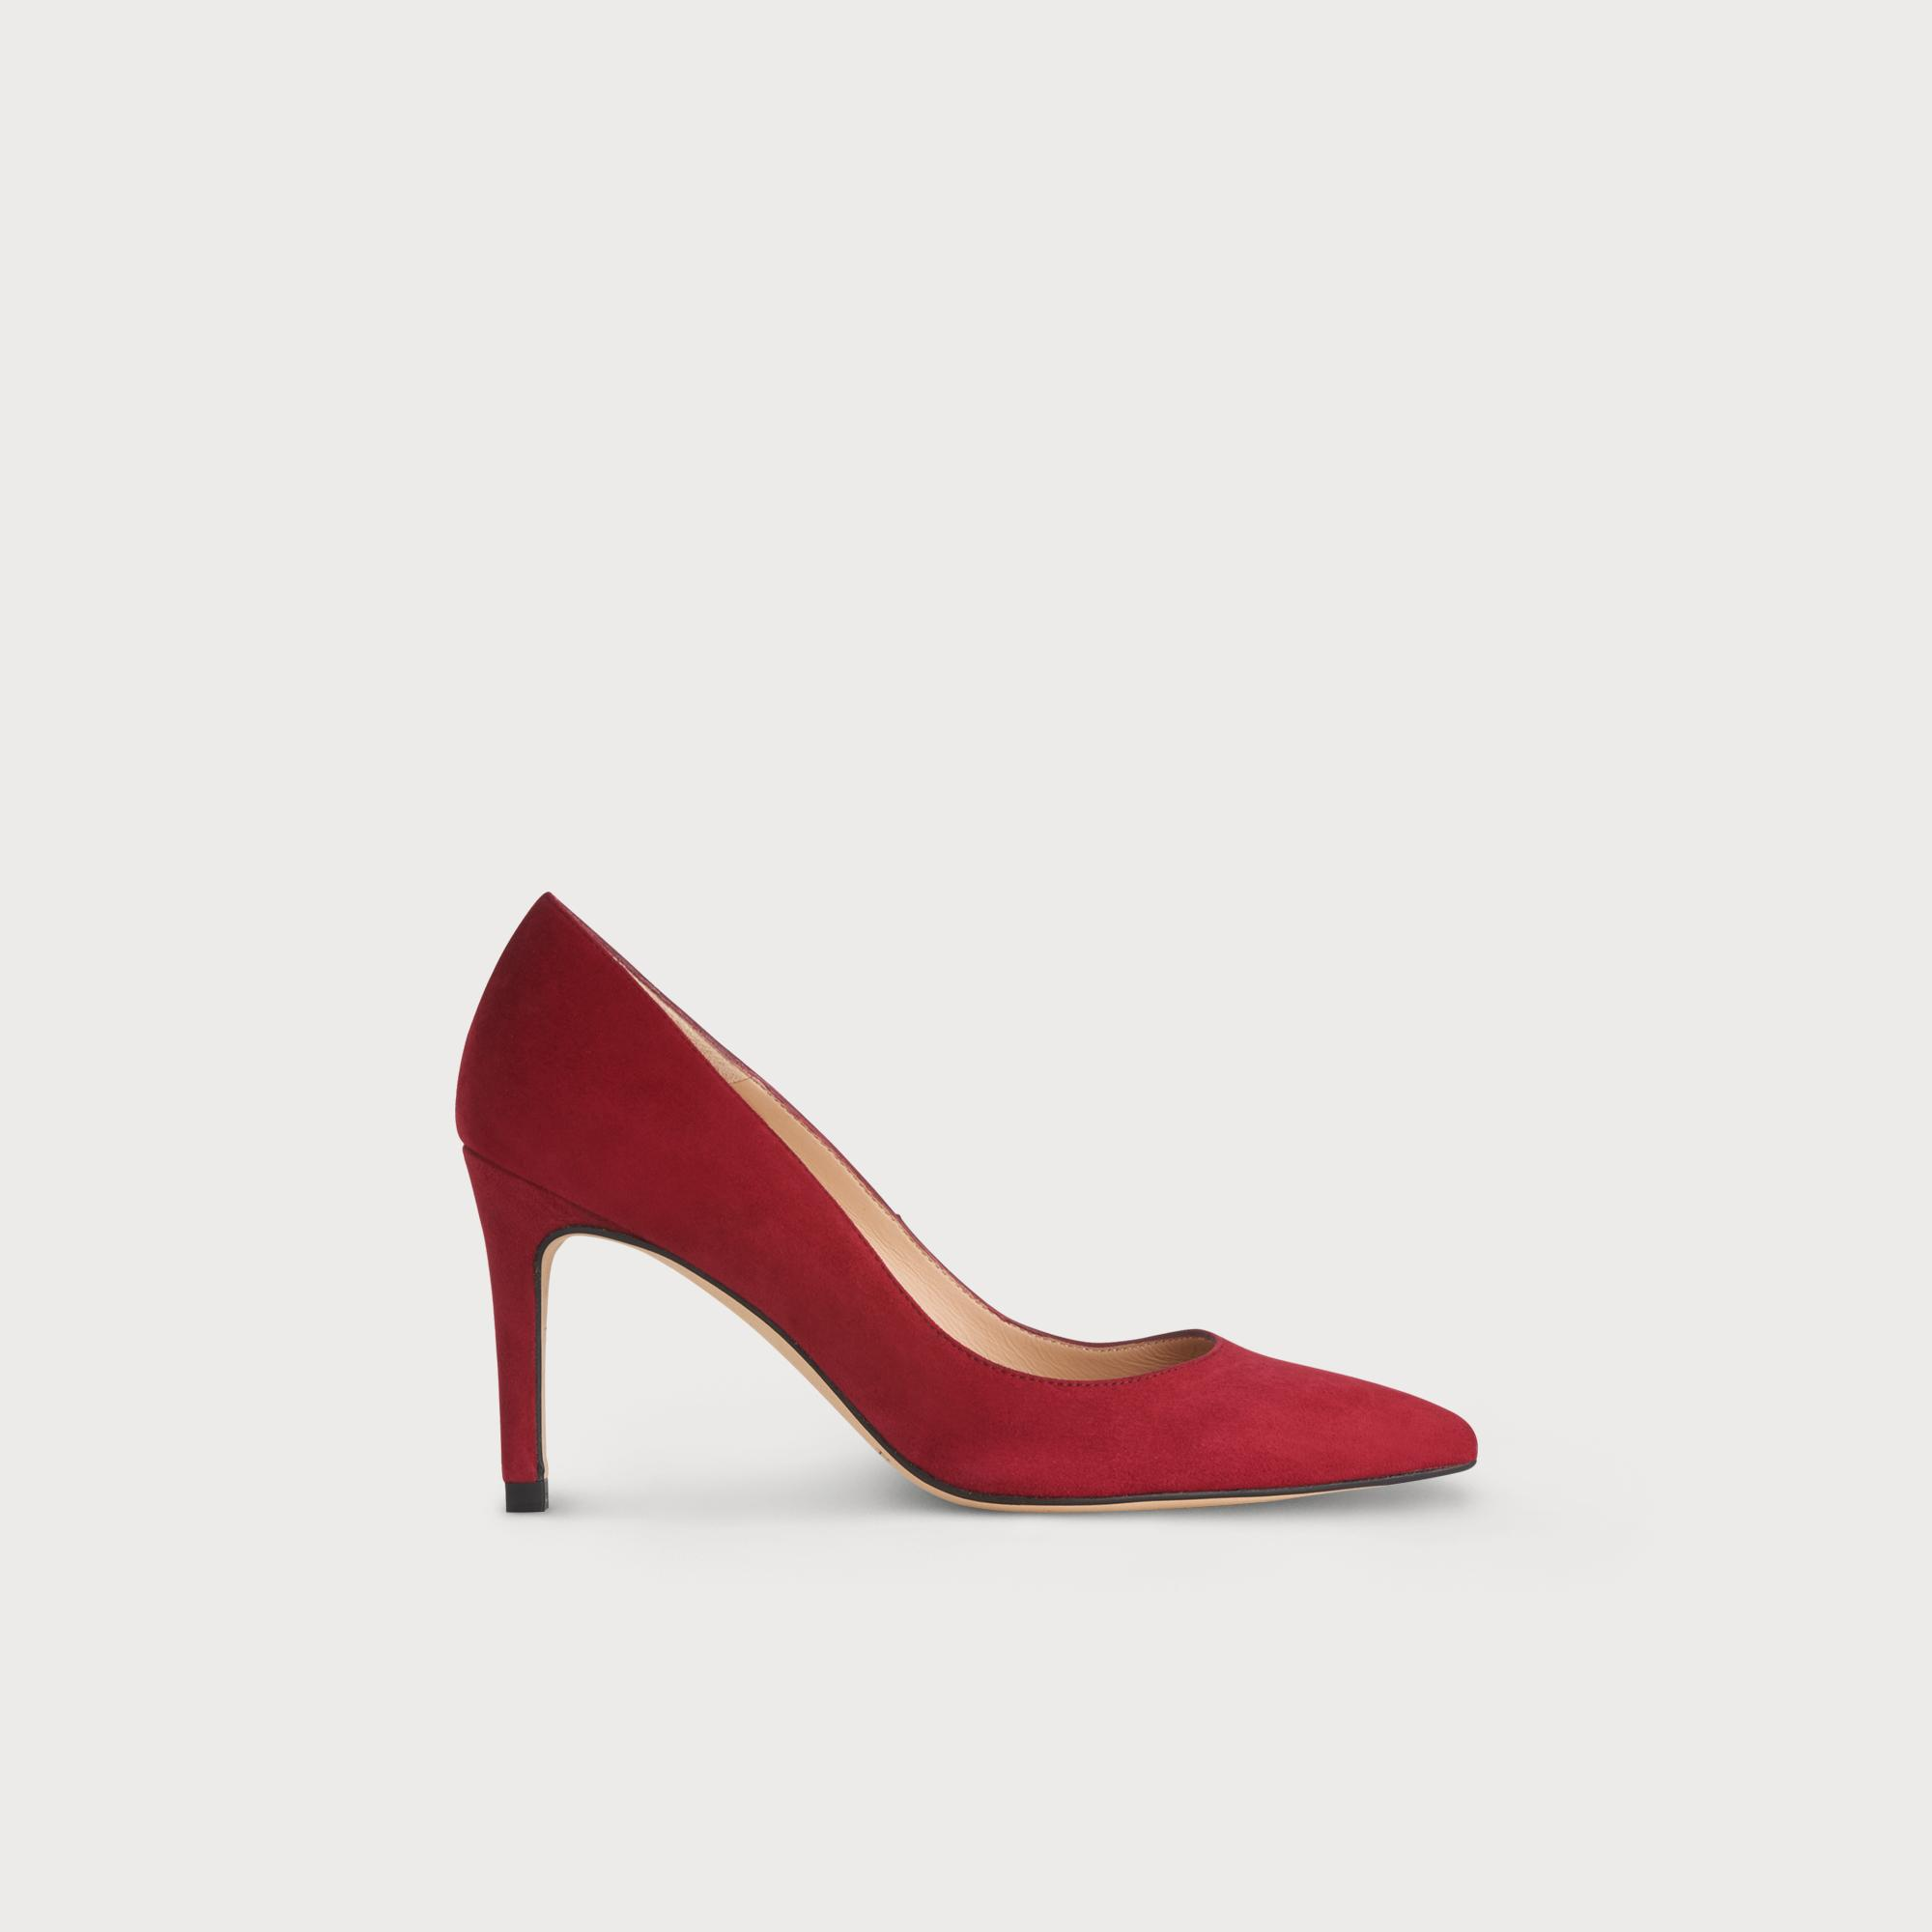 Floret Poppy Red Suede Heel